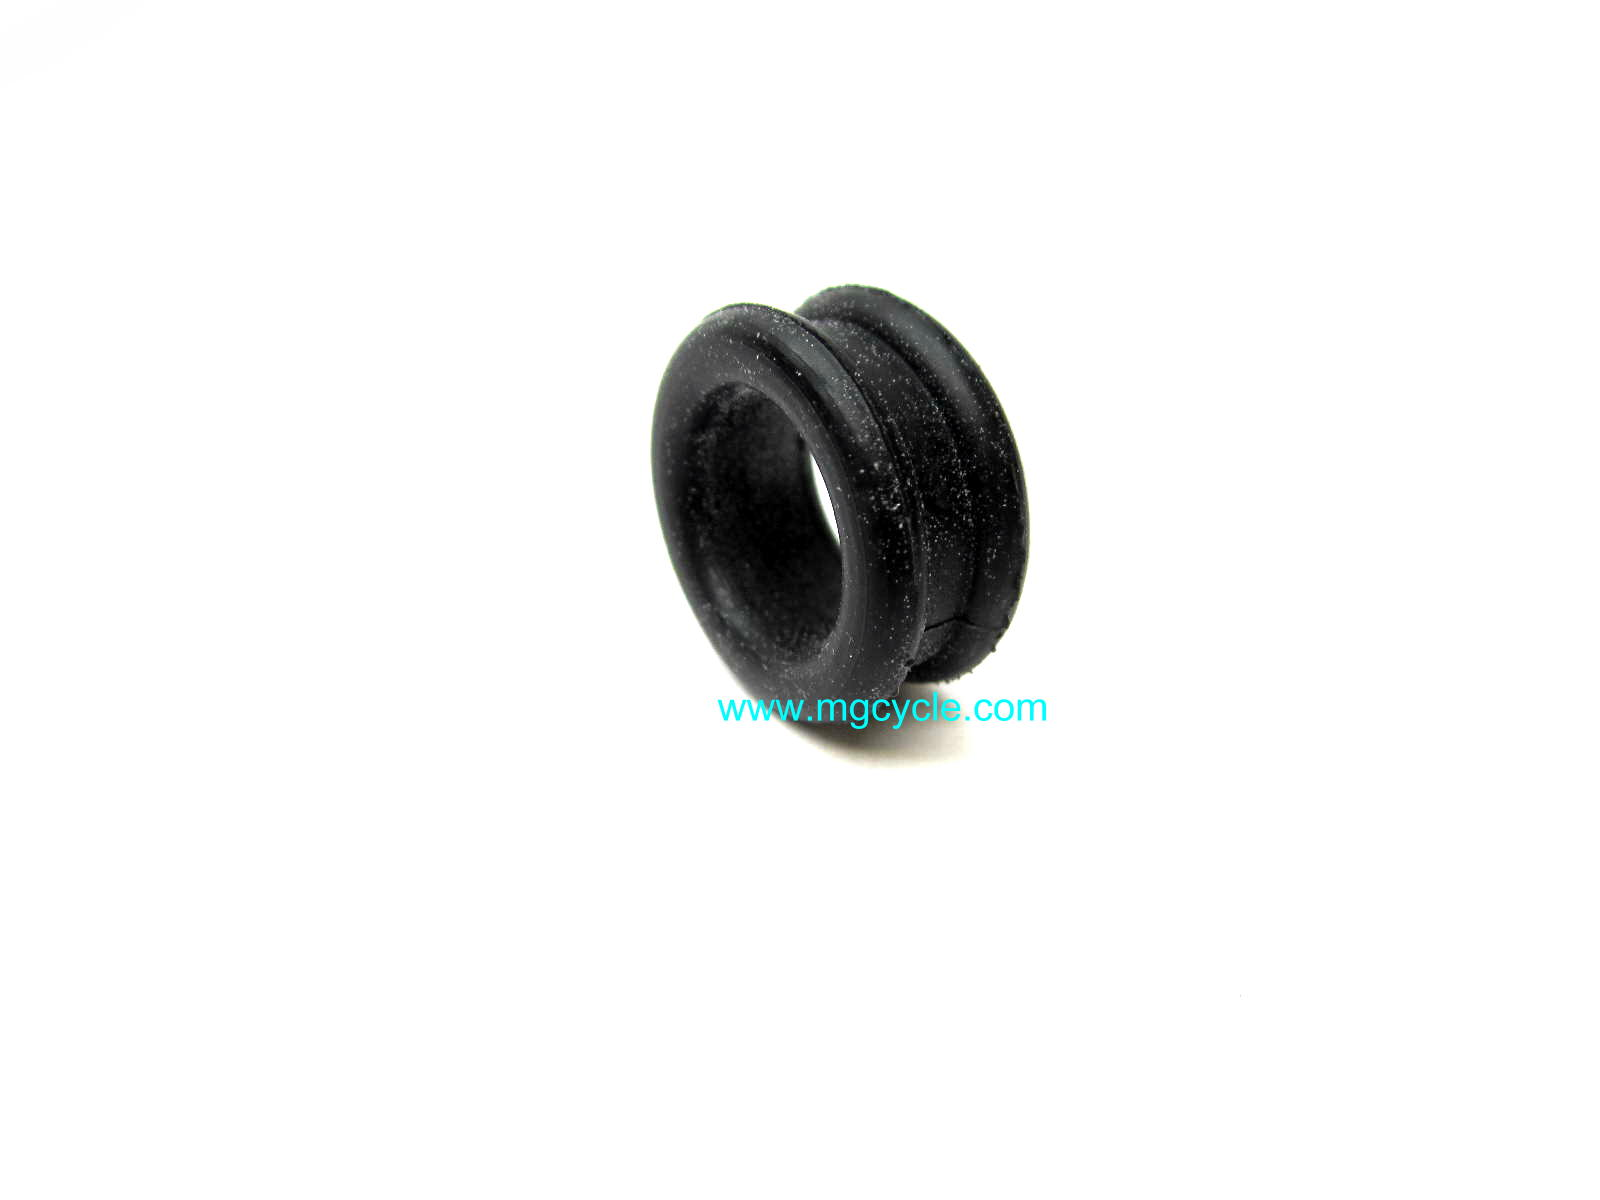 Rubber grommet, brake hose eyelet, multi use